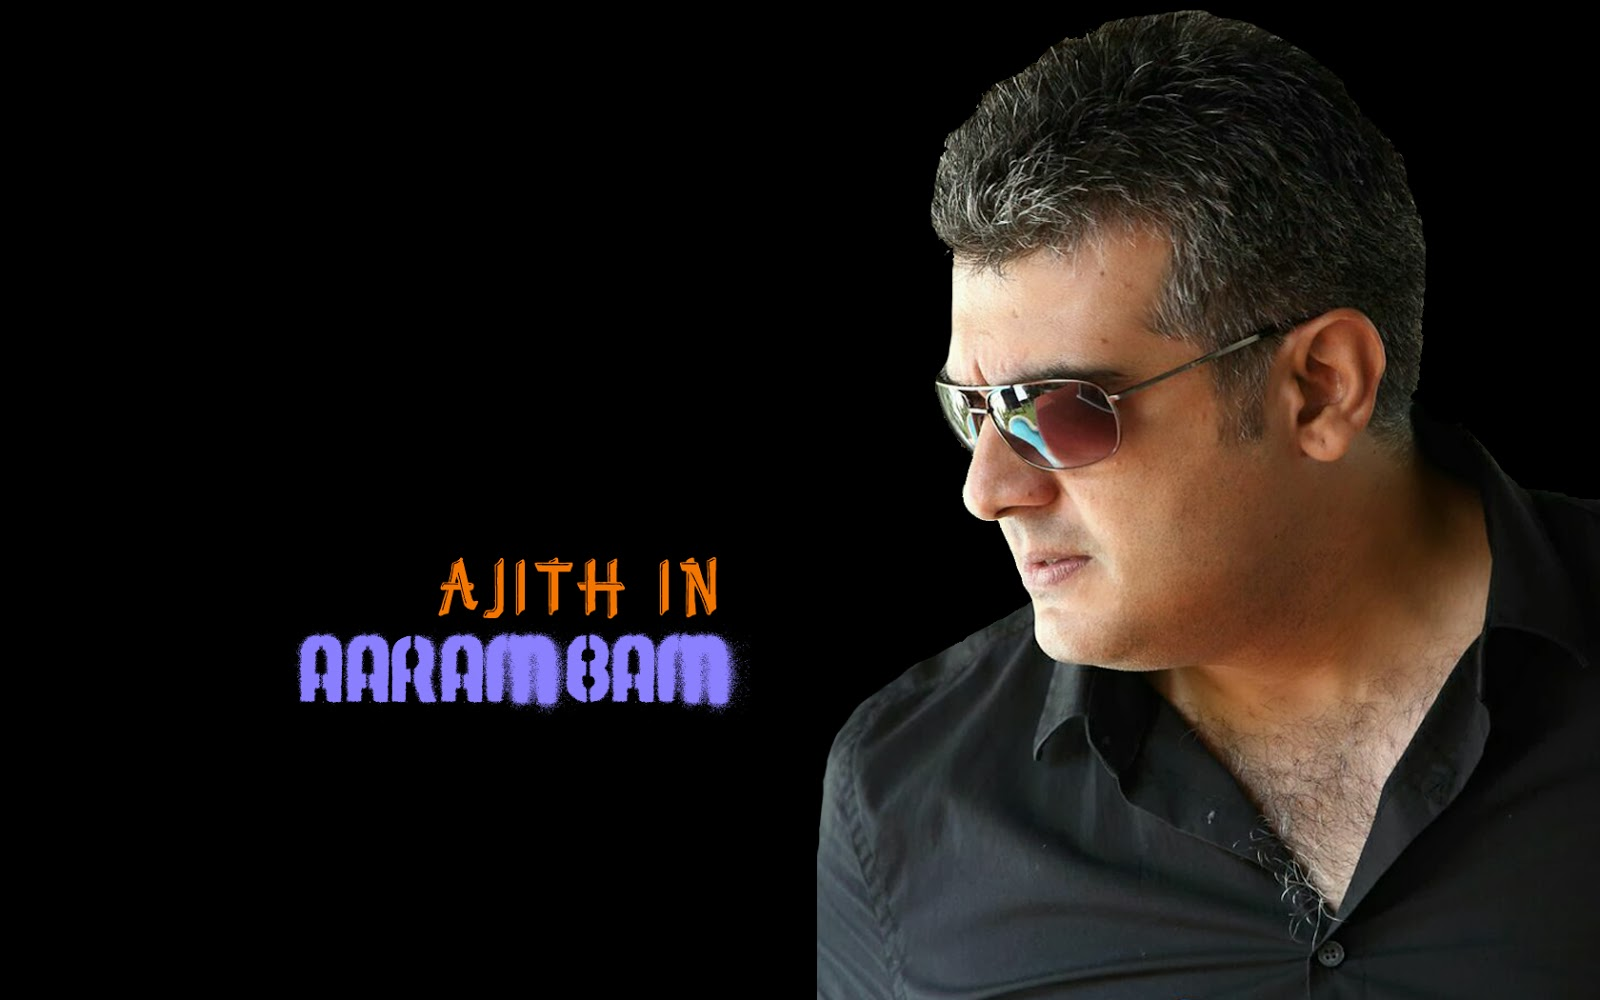 Wallpaper HD Ajith In Aarambam Poster